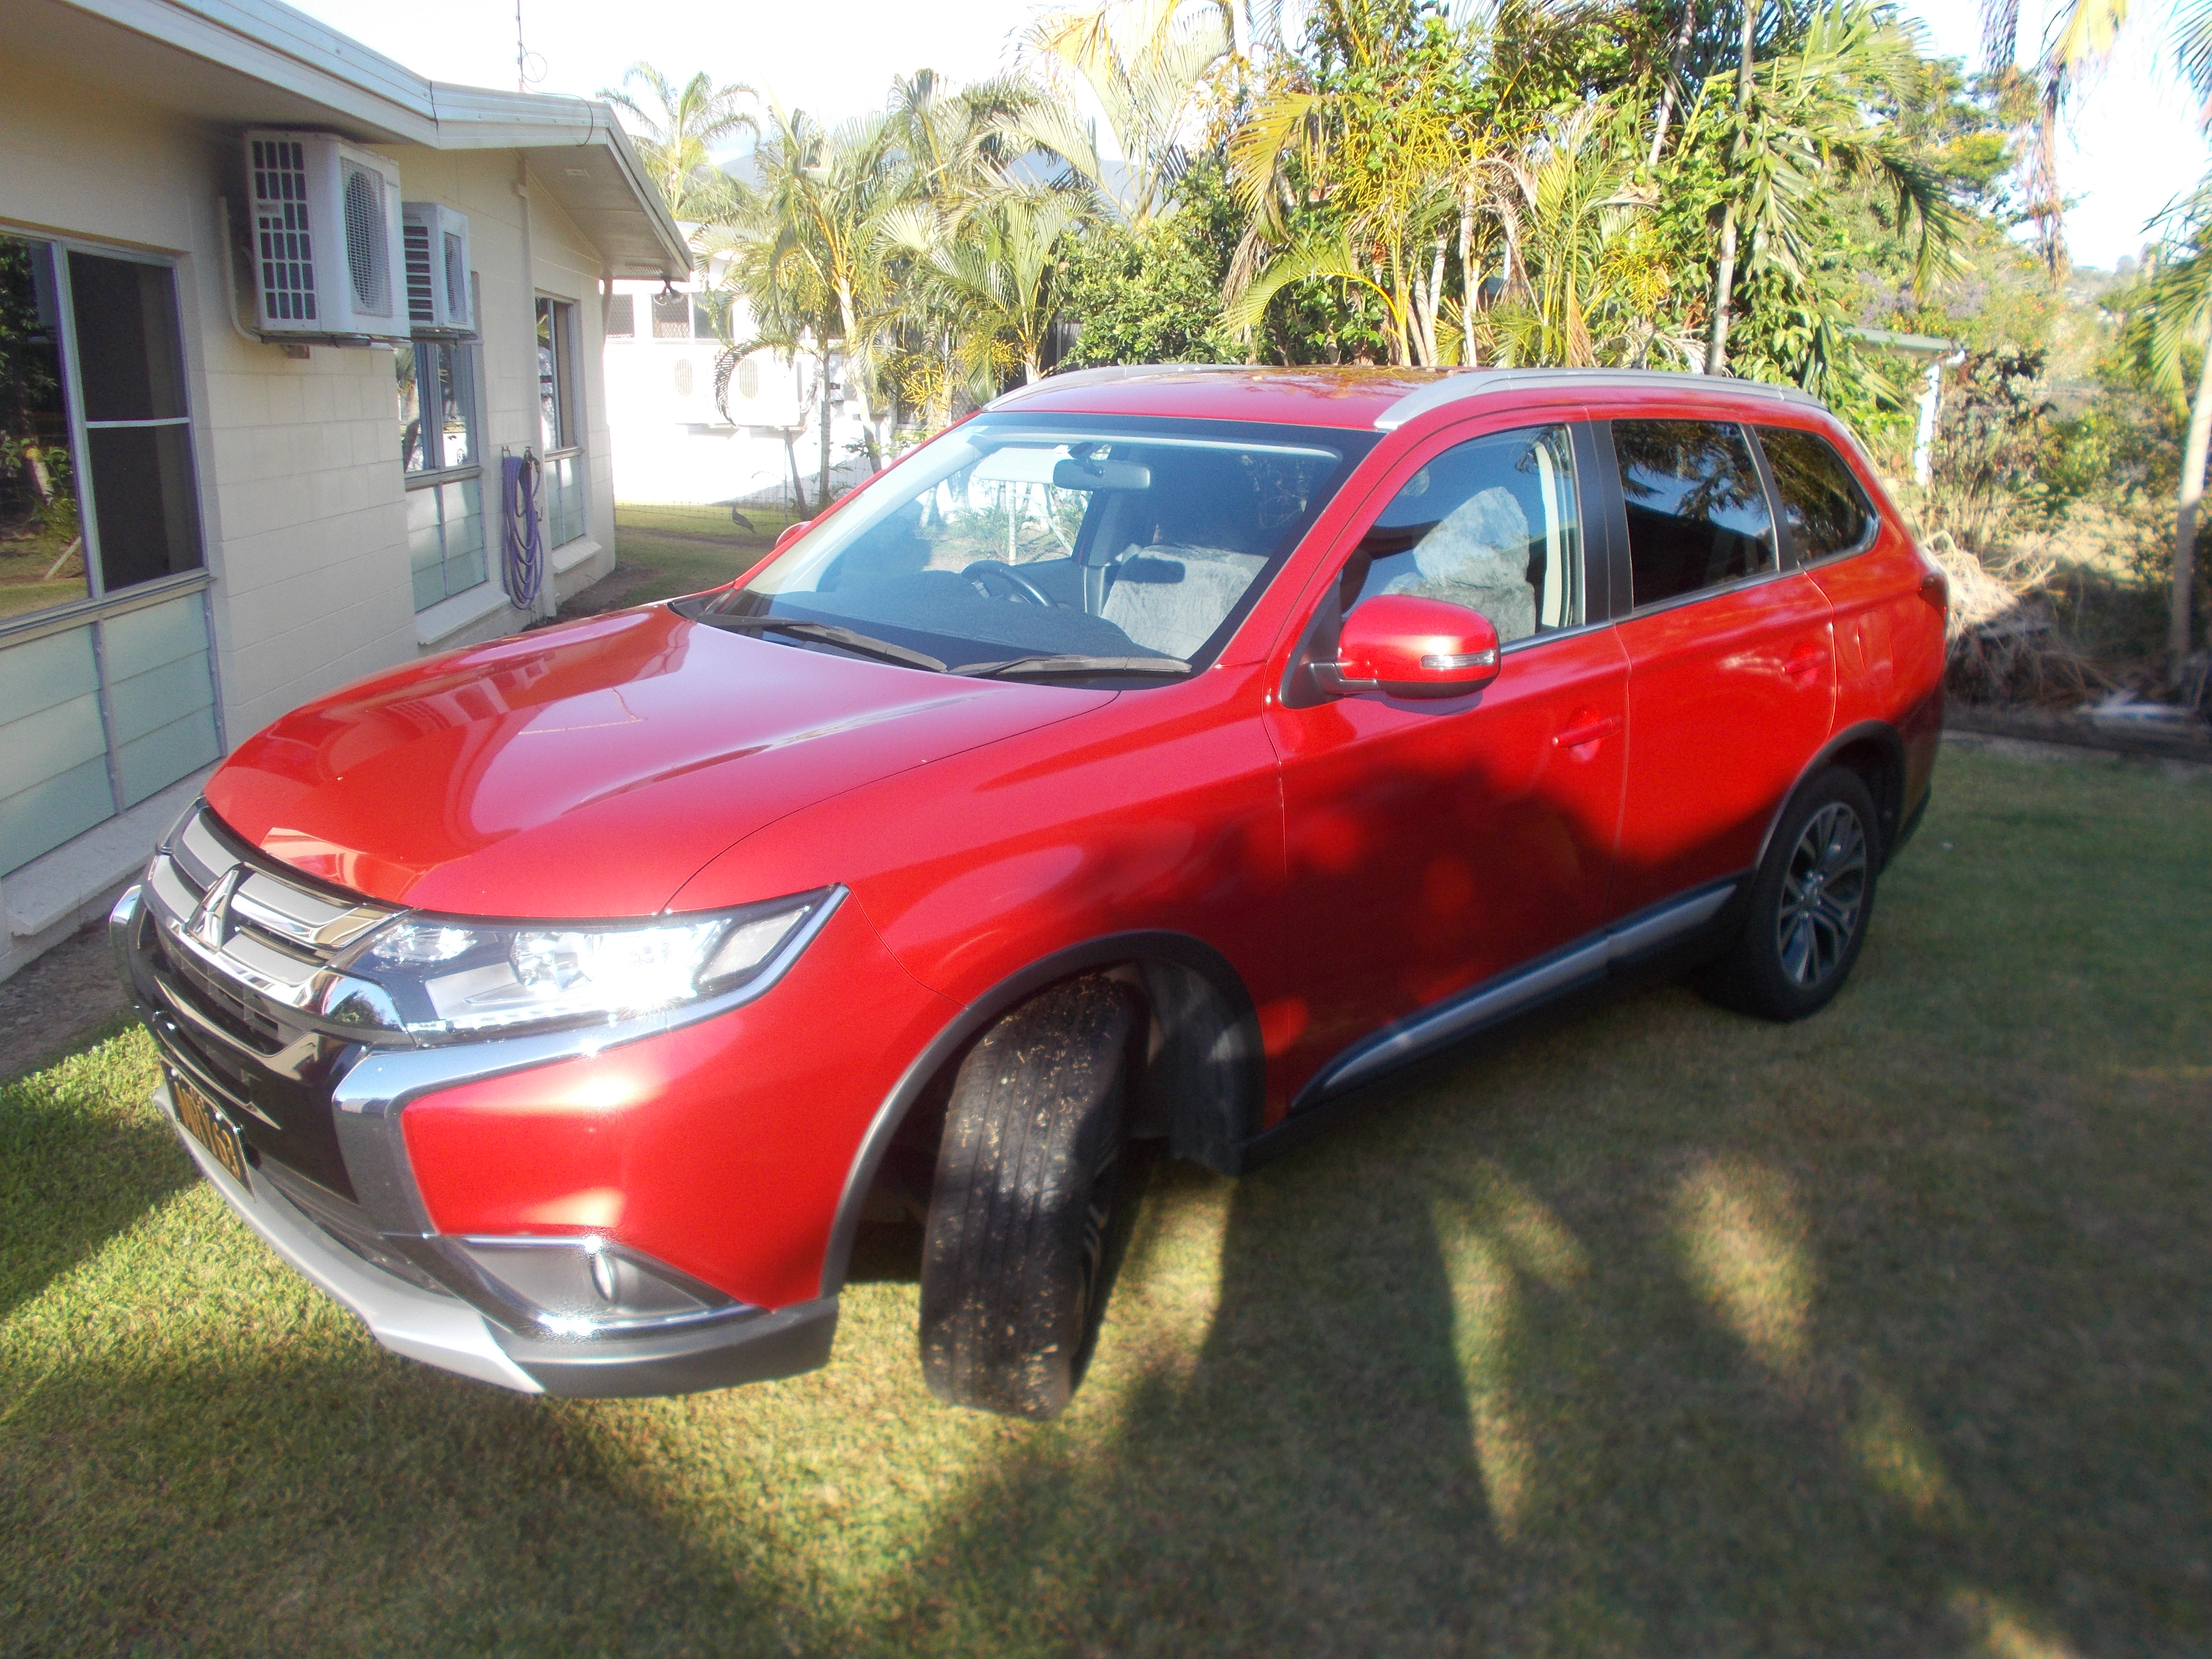 OUTLANDER 2015